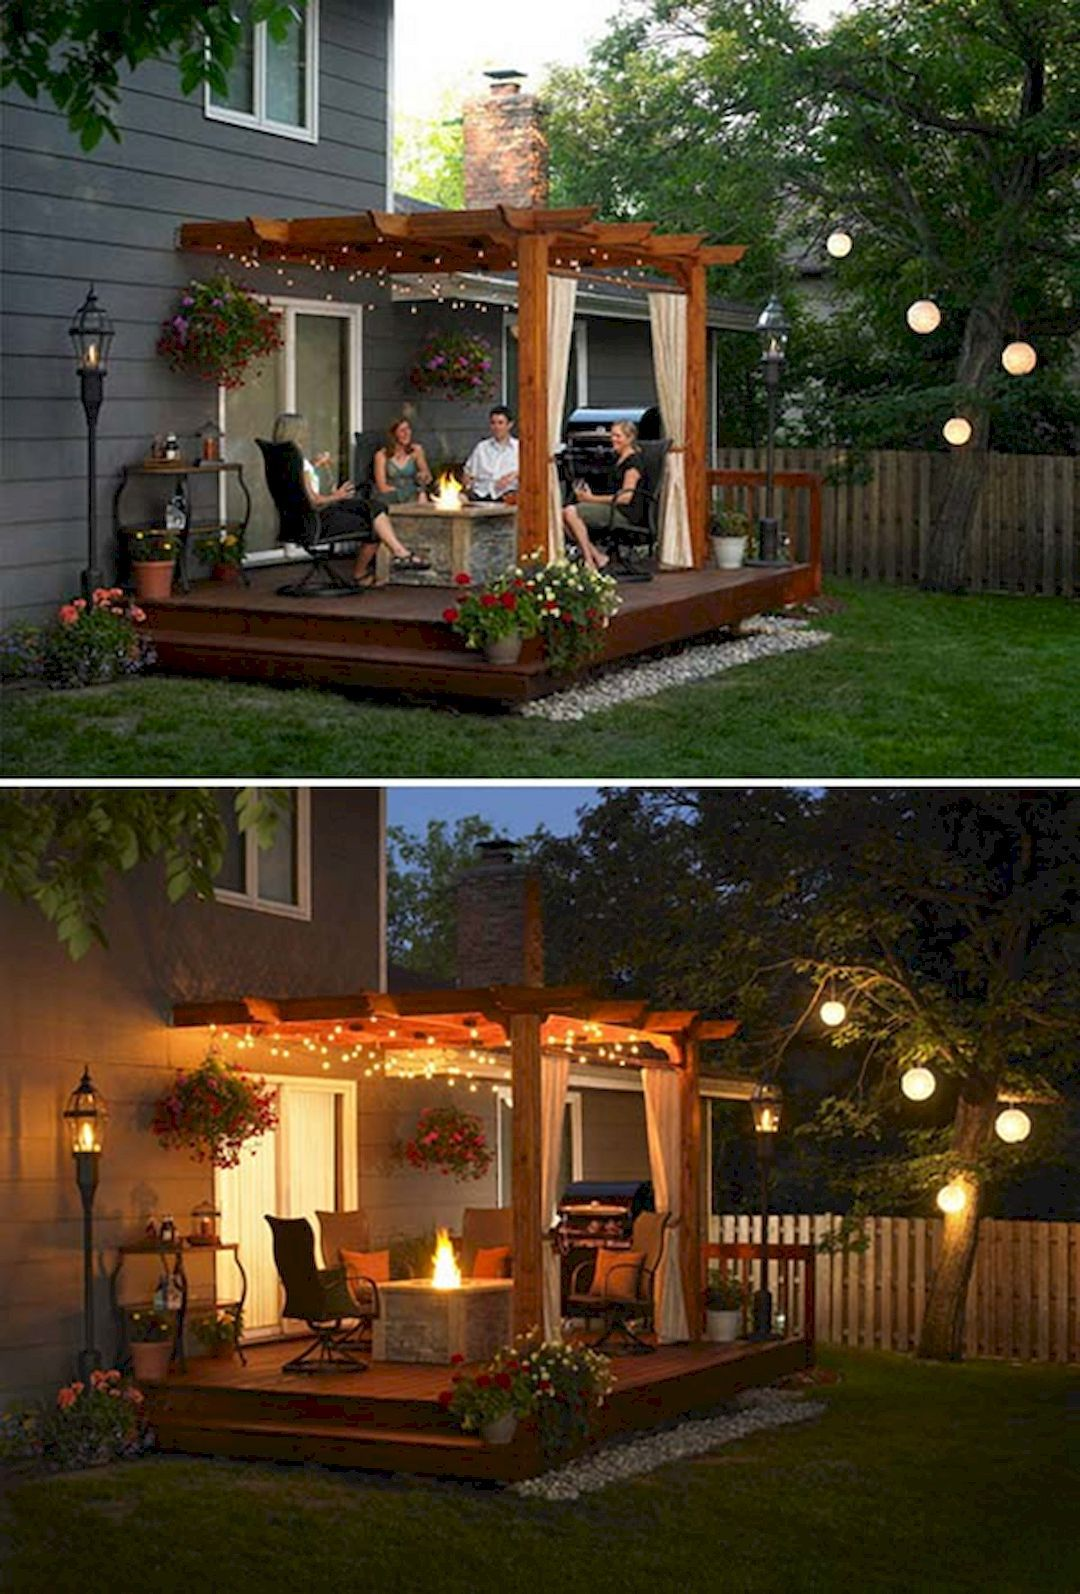 77 Cool Backyard Deck Design Ideas https://www.futuristarchitecture.com/ - 4 Tips To Start Building A Backyard Deck Garden Ideas Backyard